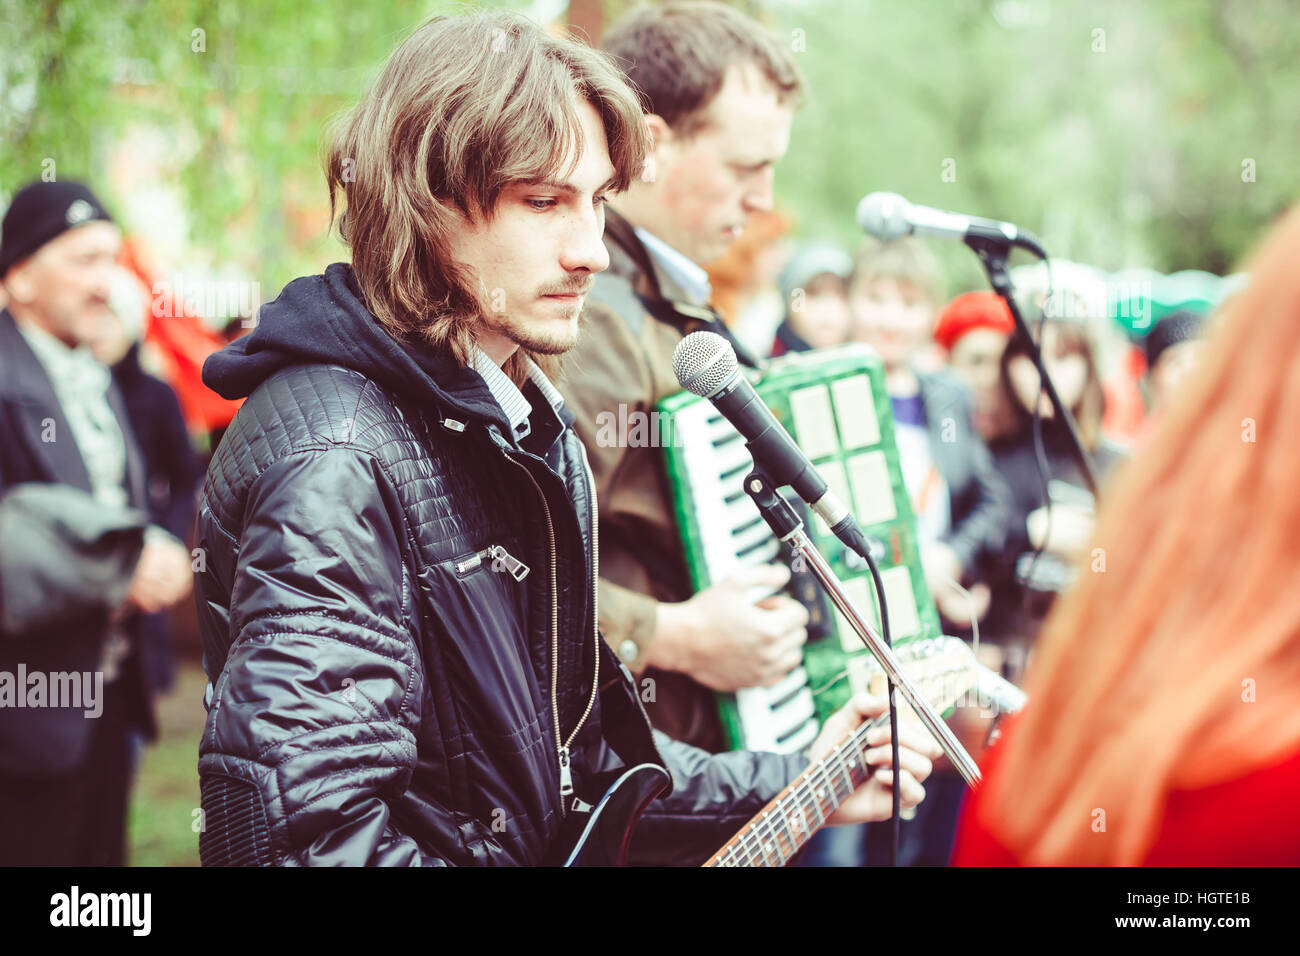 singer at the microphone in the street - Stock Image